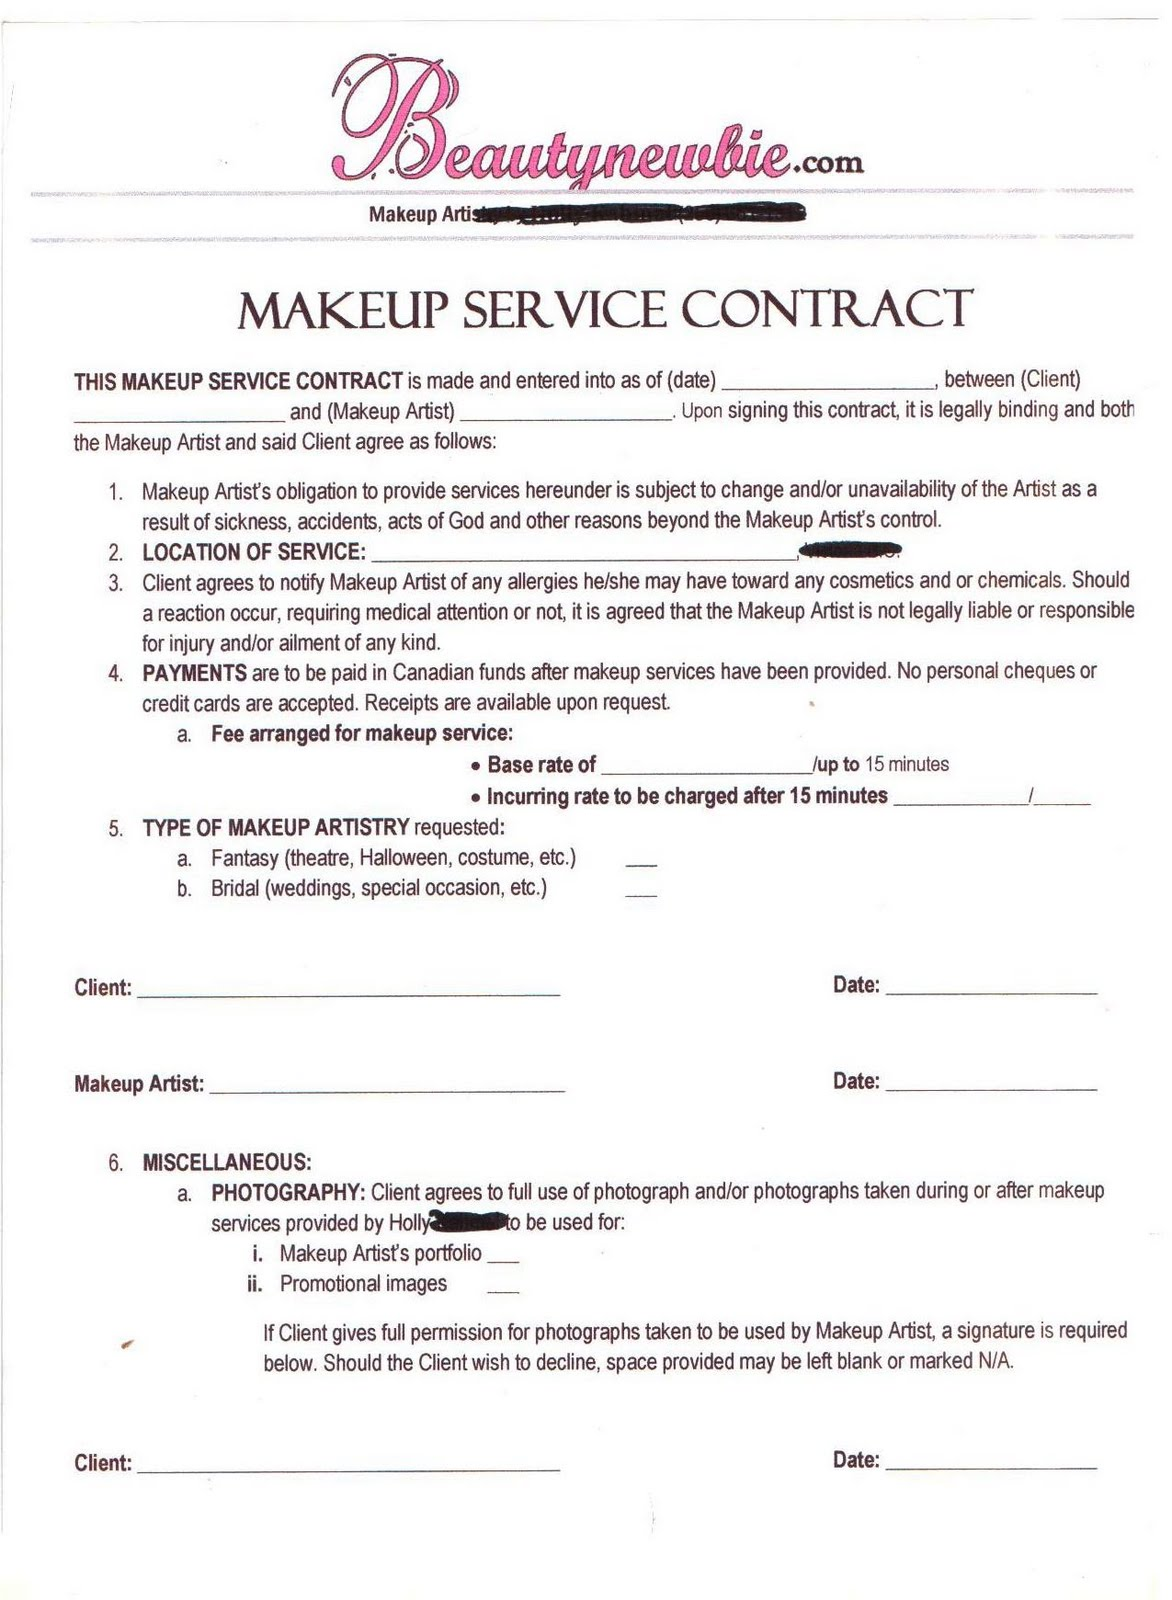 disclaimer template uk - wedding hair stylist contract agreement